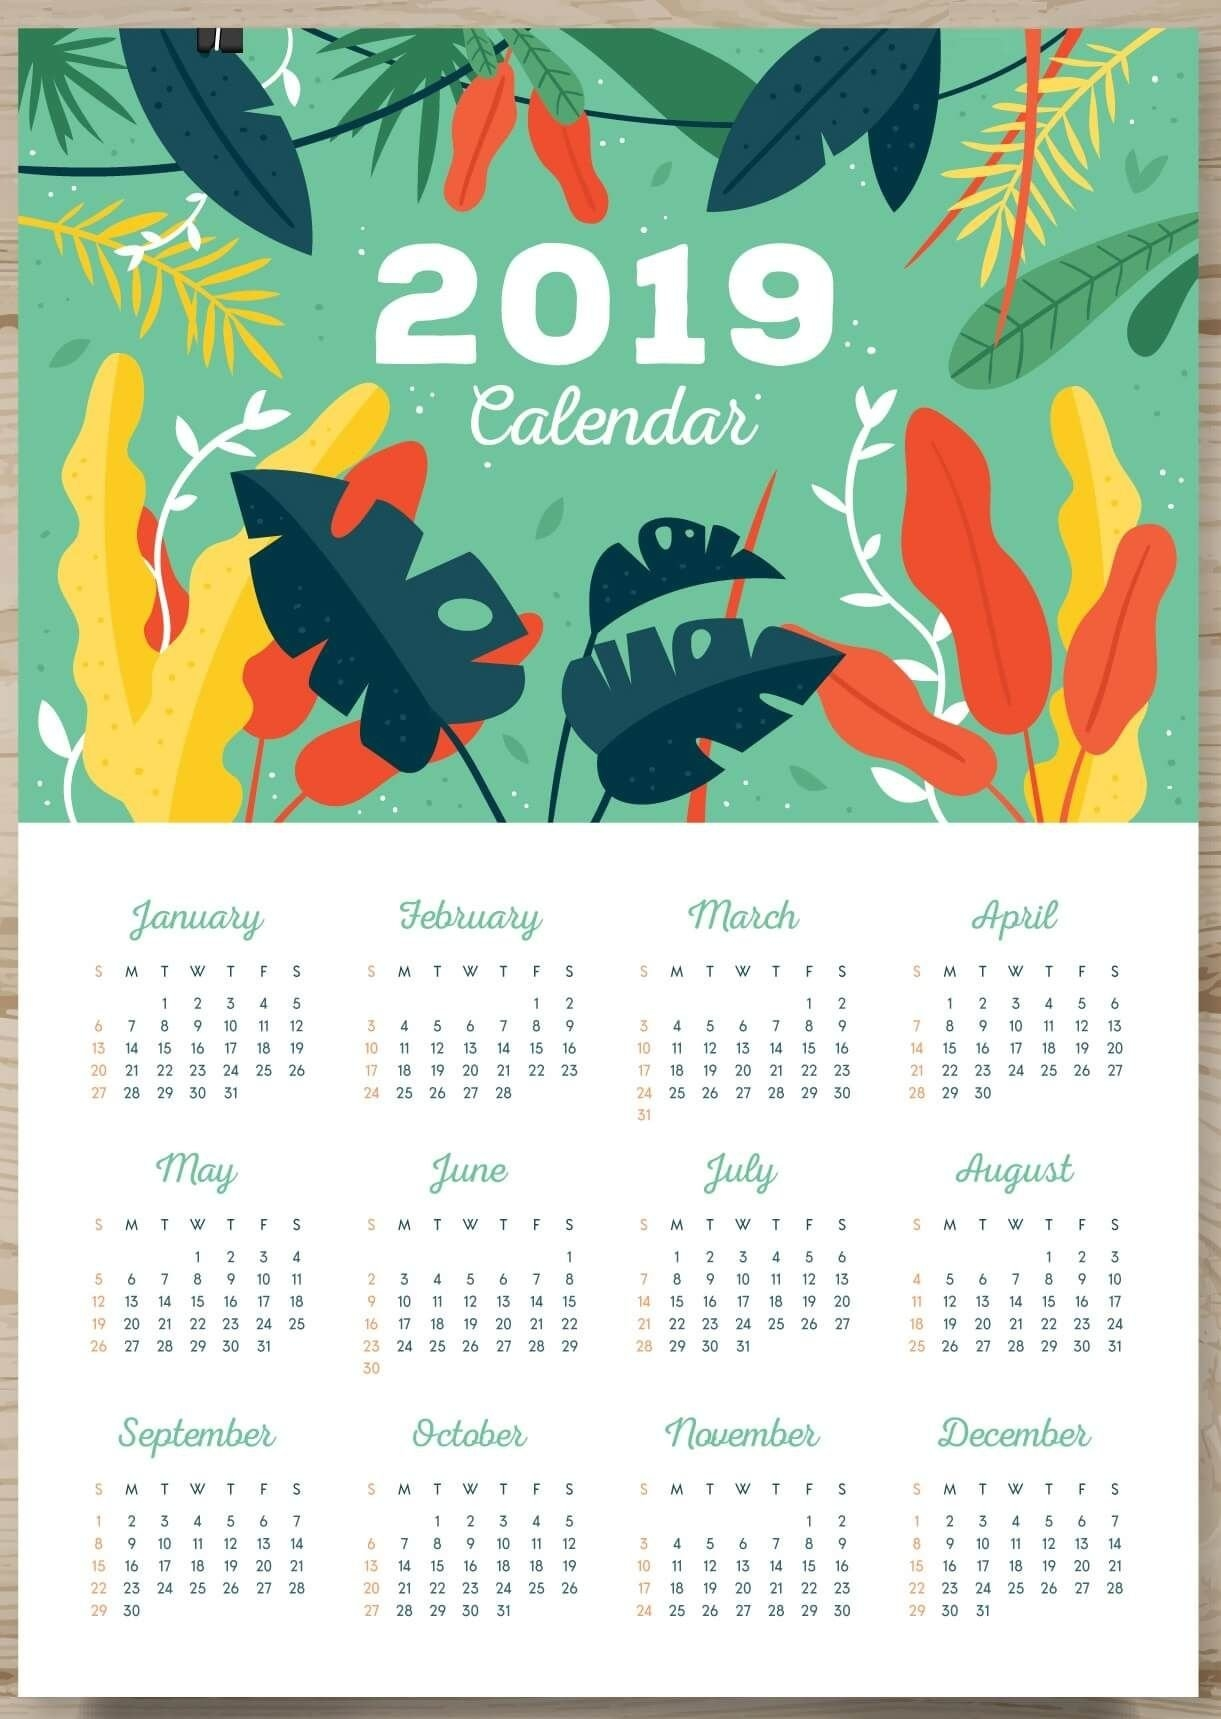 One Page Calendar 2019 #2019Calendars | 250+ 2019 Calendars Calendar 2019 Layout